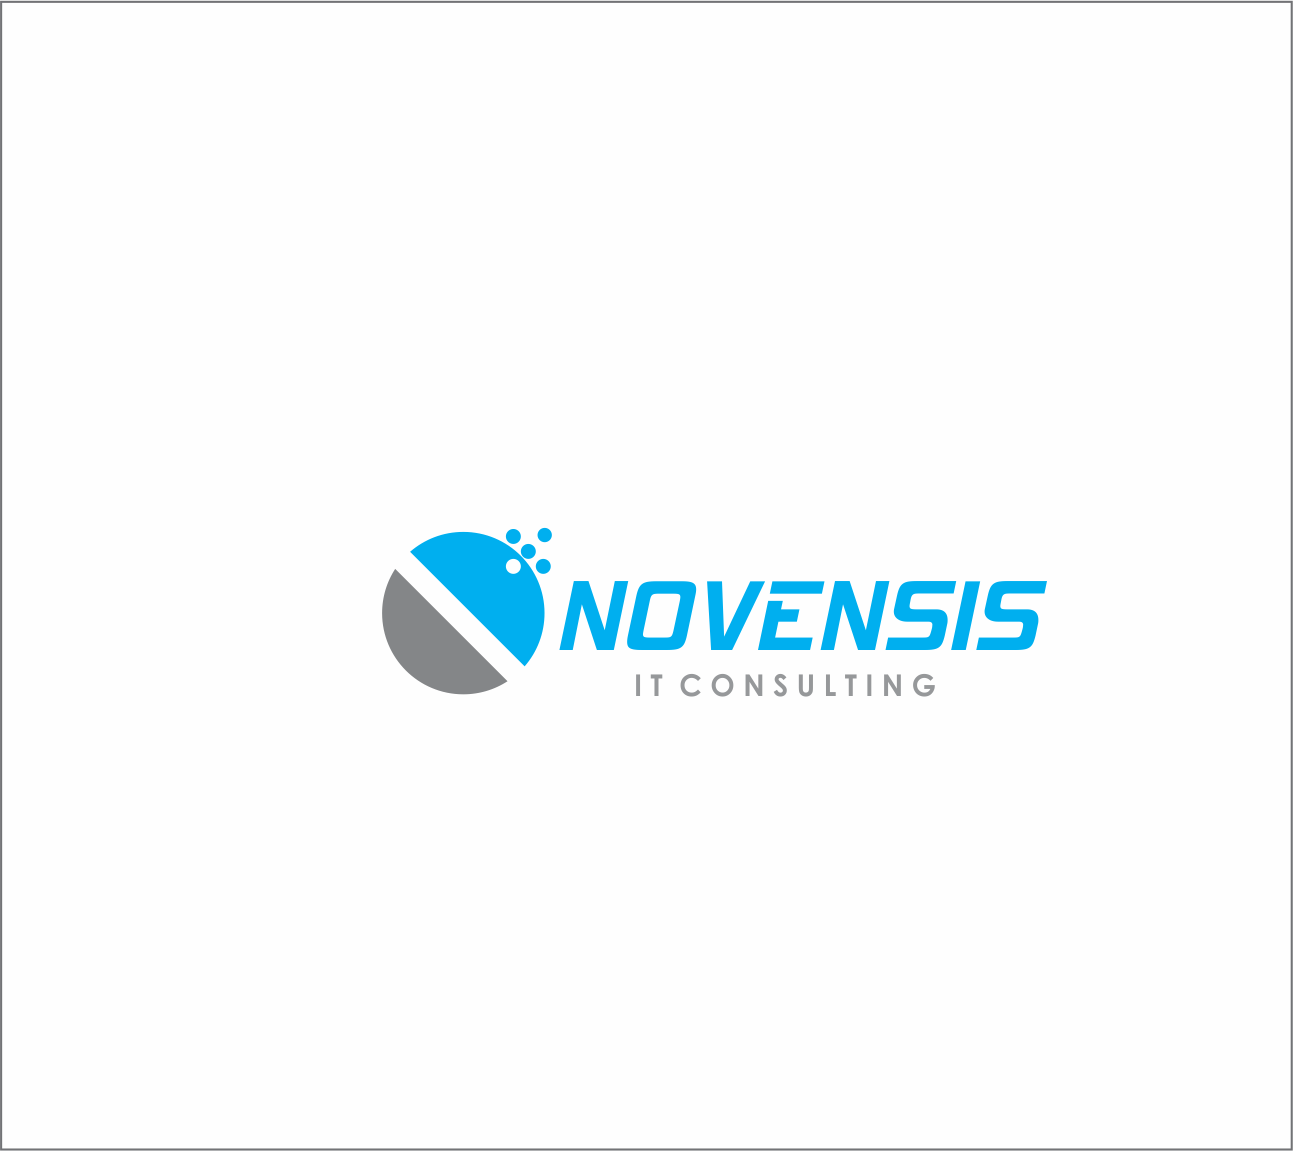 Logo Design by Armada Jamaluddin - Entry No. 117 in the Logo Design Contest Novensis Logo Design.